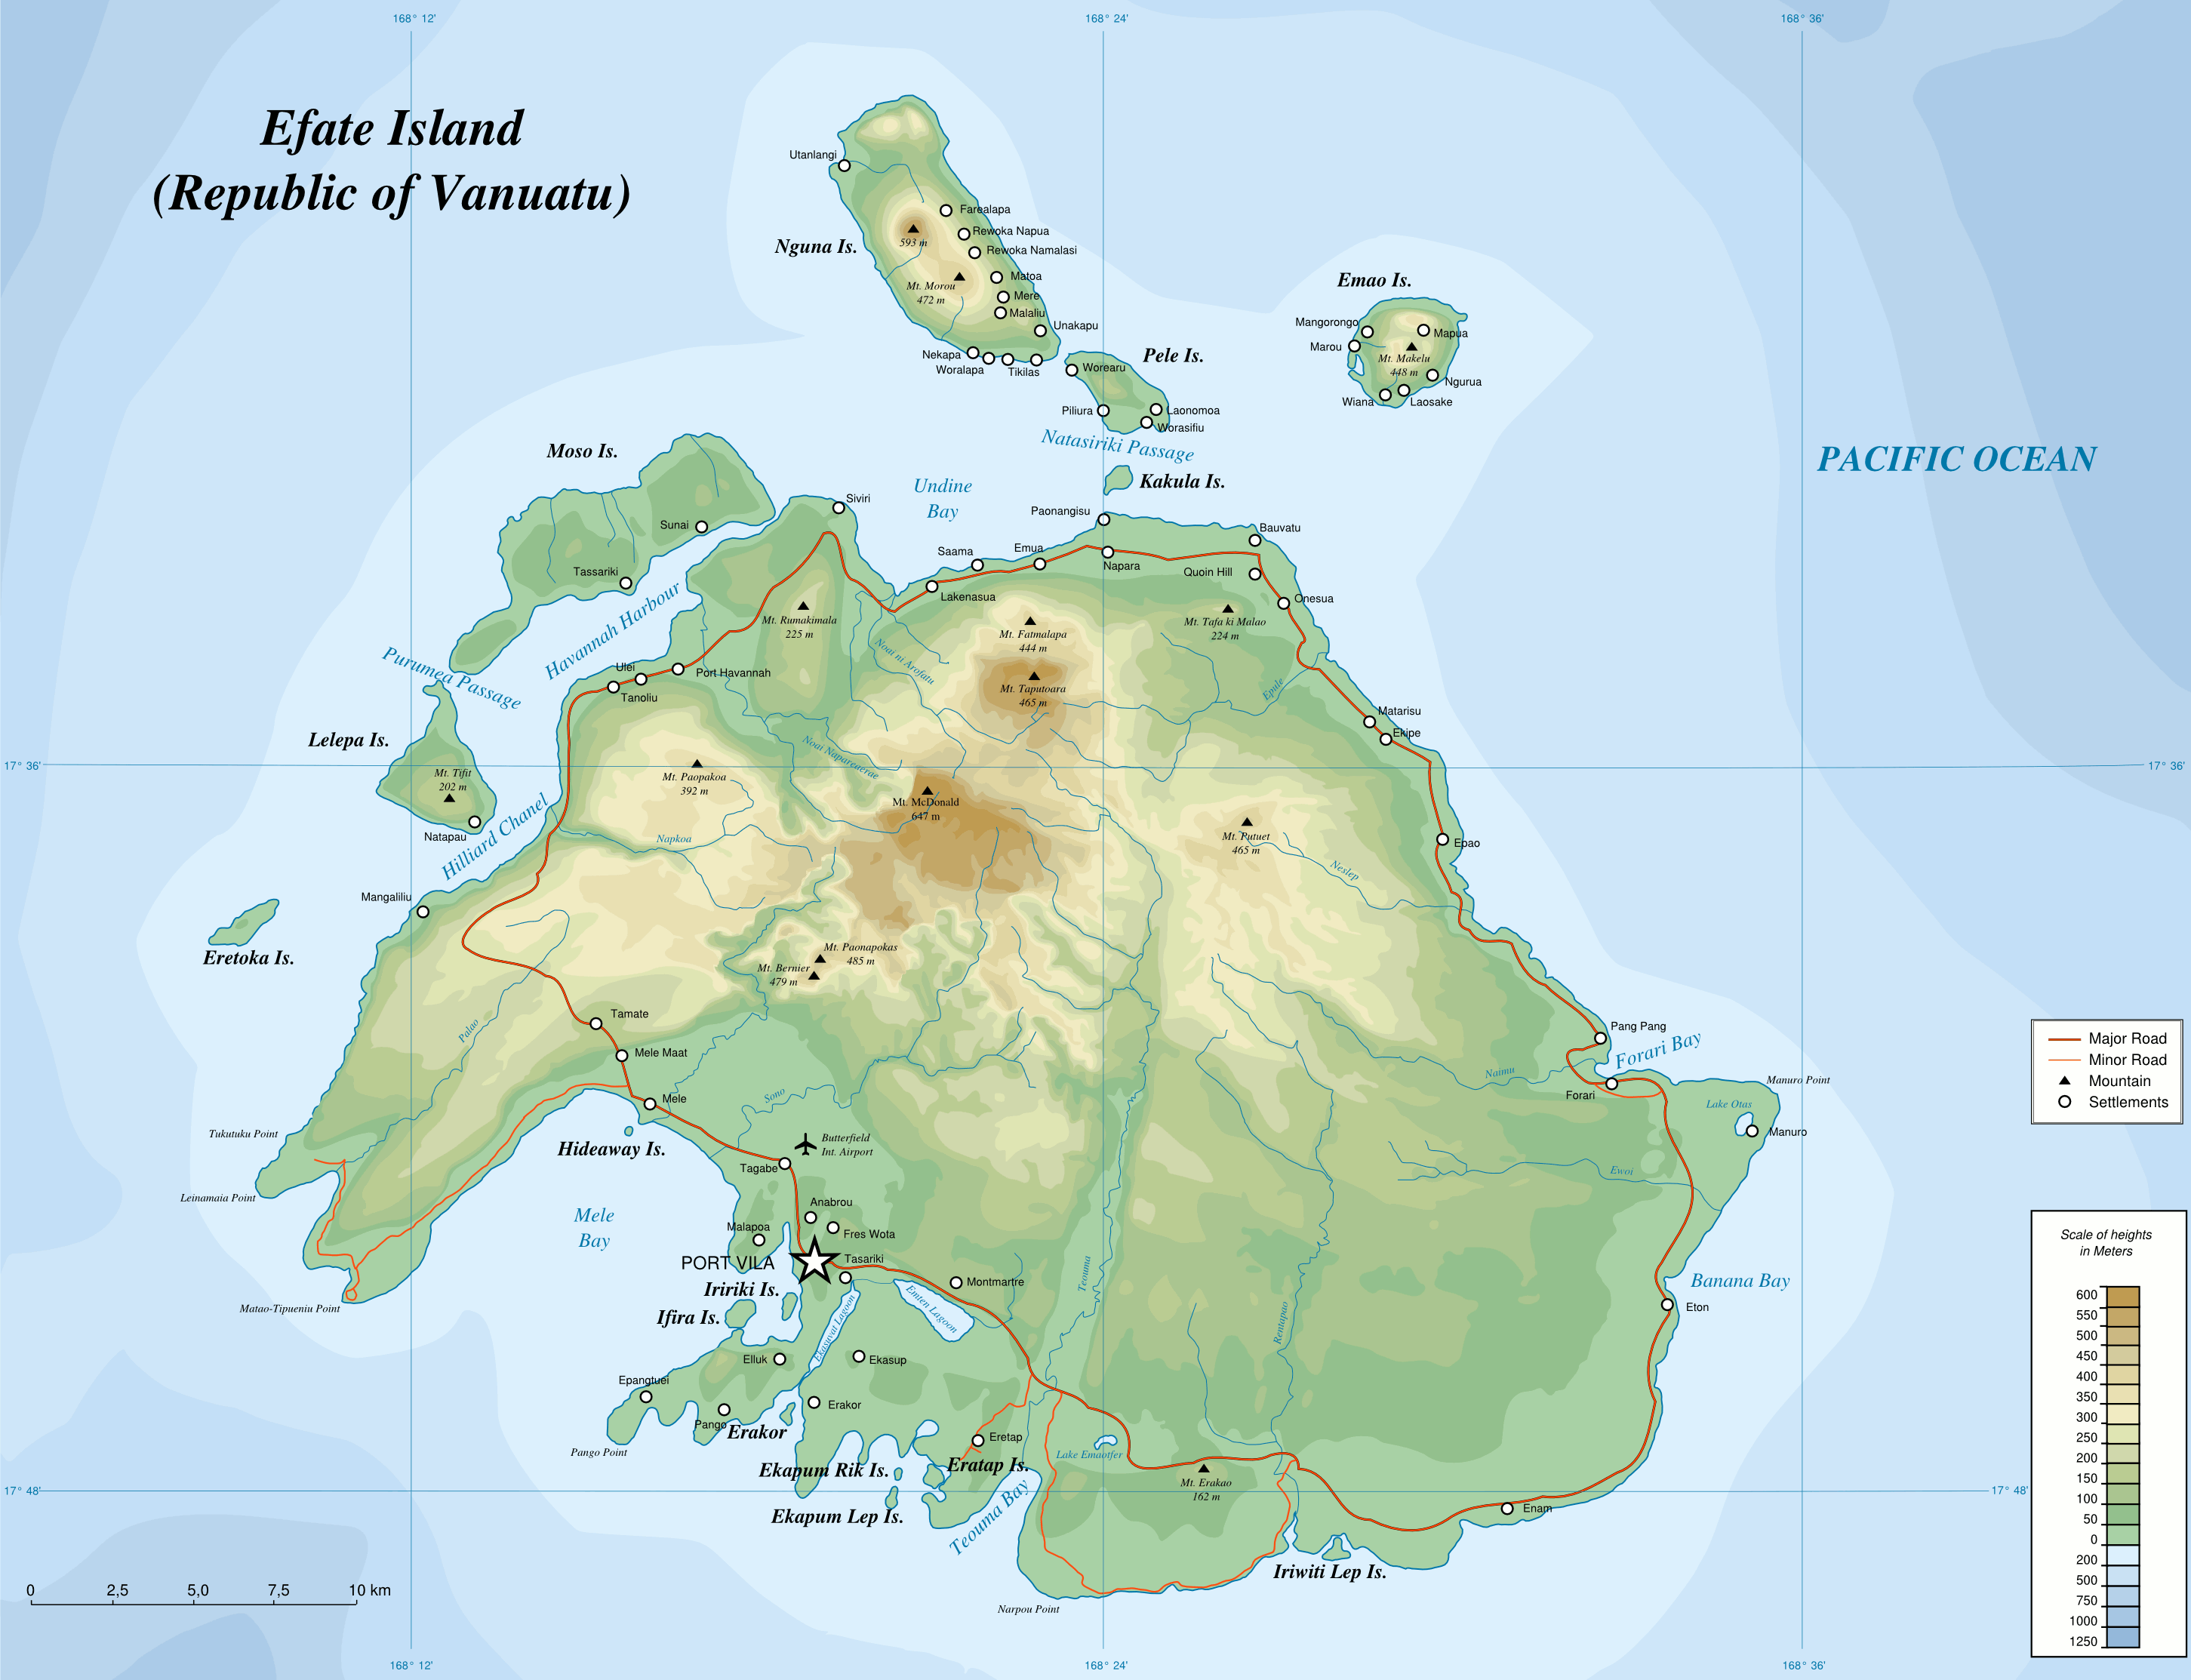 FileMap Of Efate Island ENpng Wikimedia Commons - Islands map